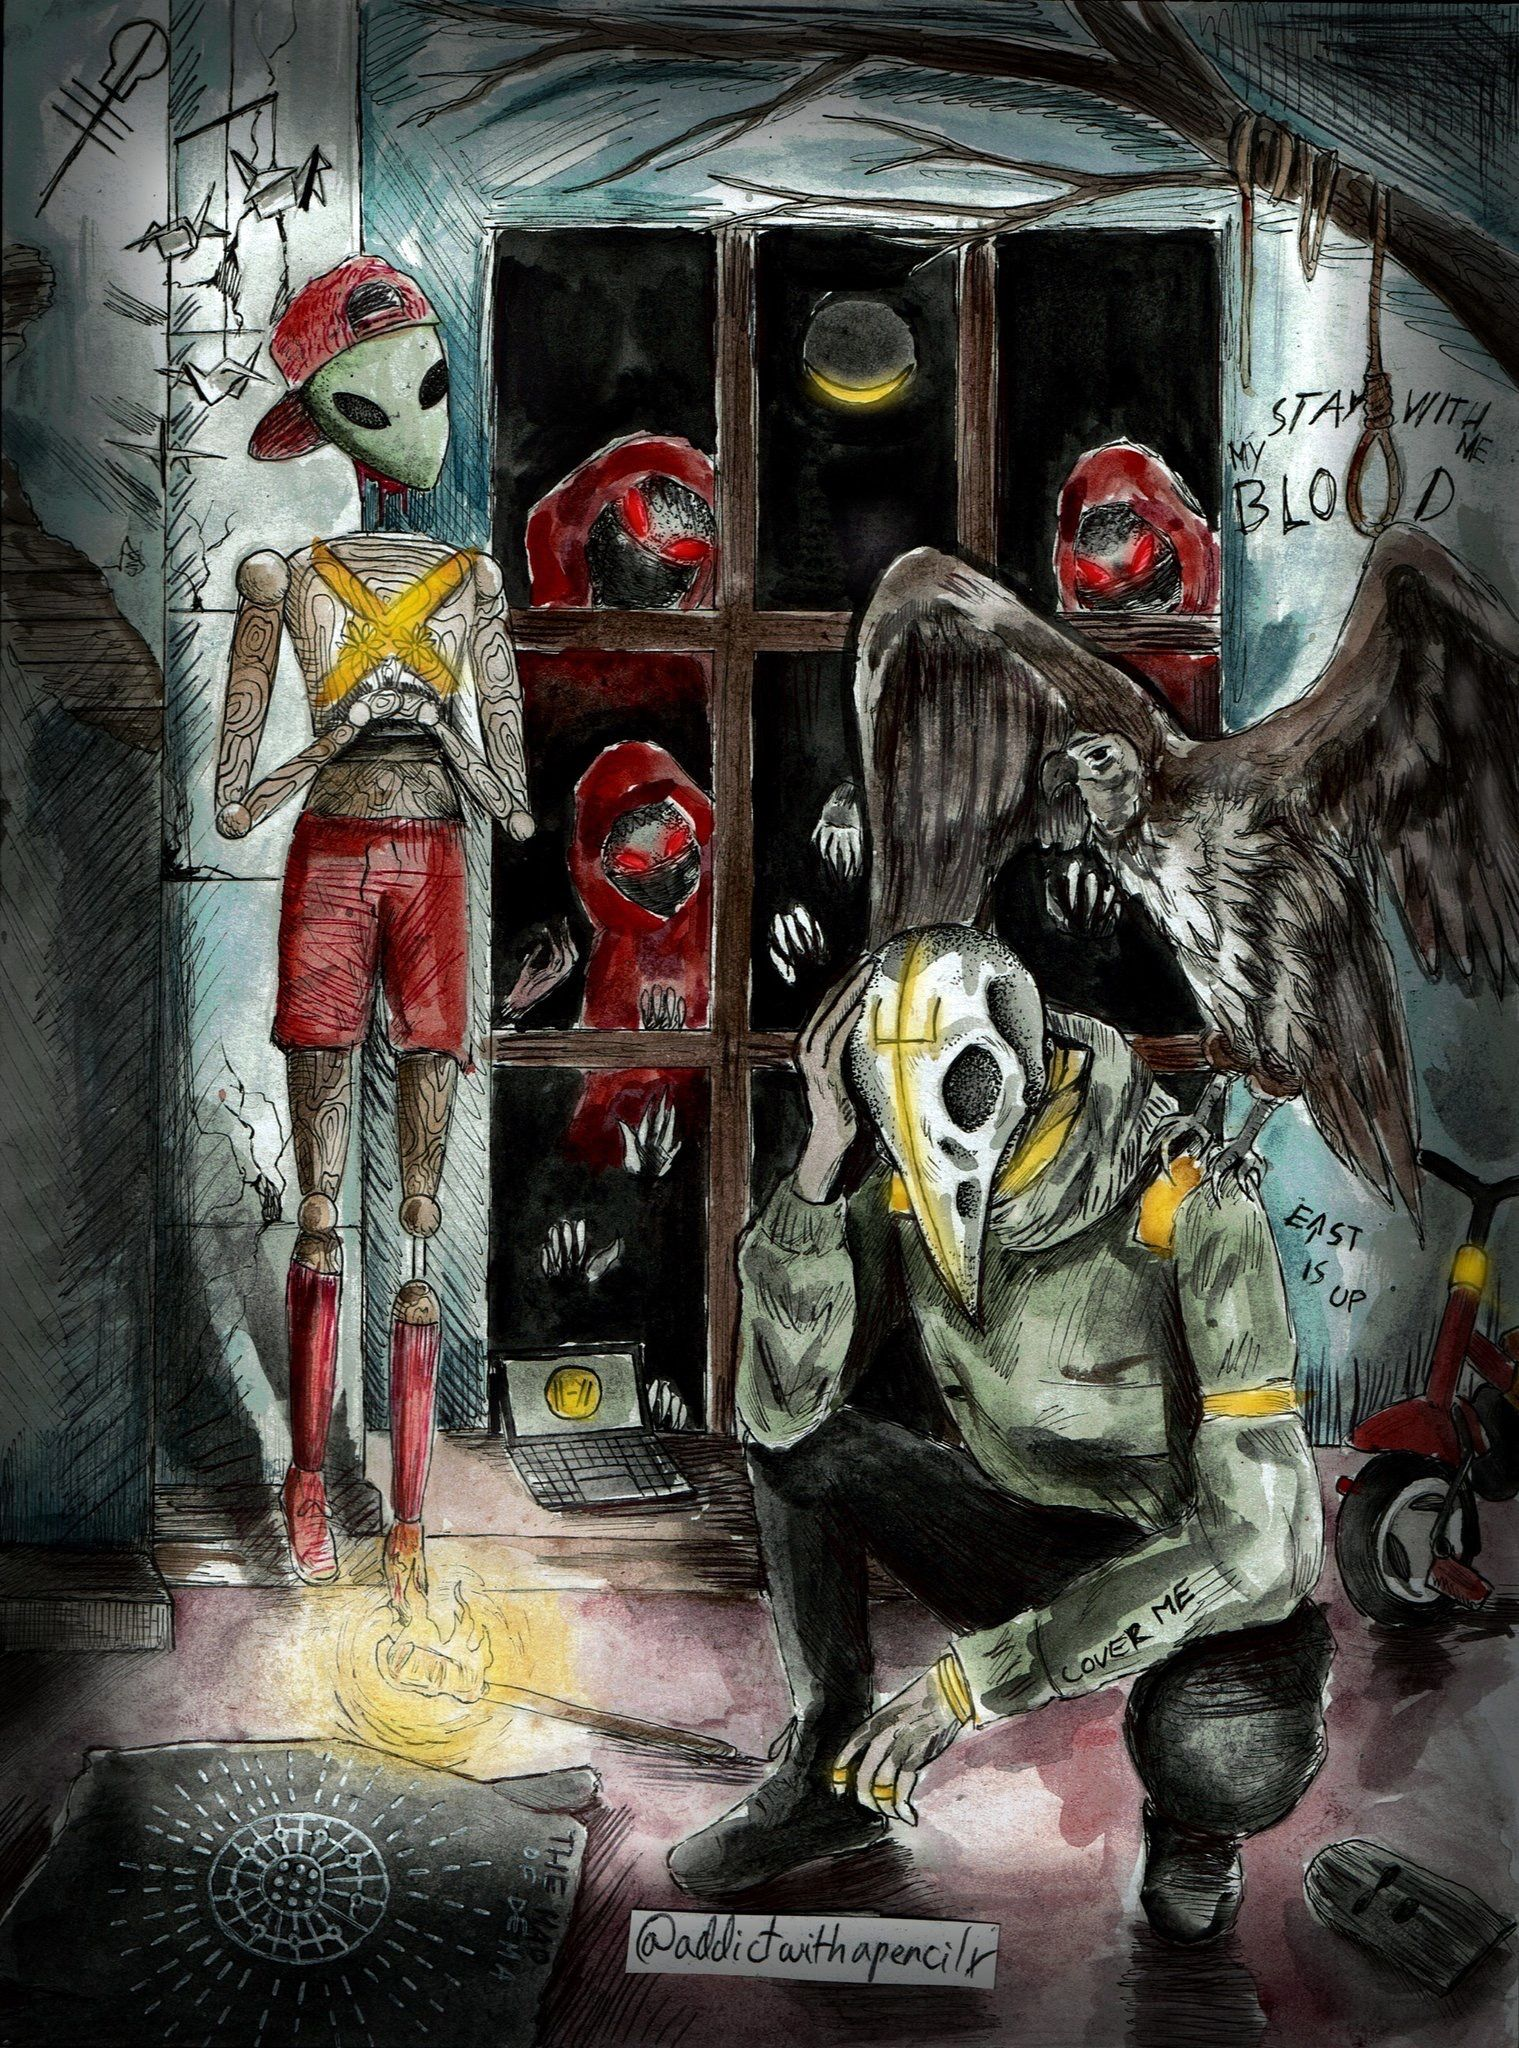 This was done by awapxart and is my favorite tøp fan art